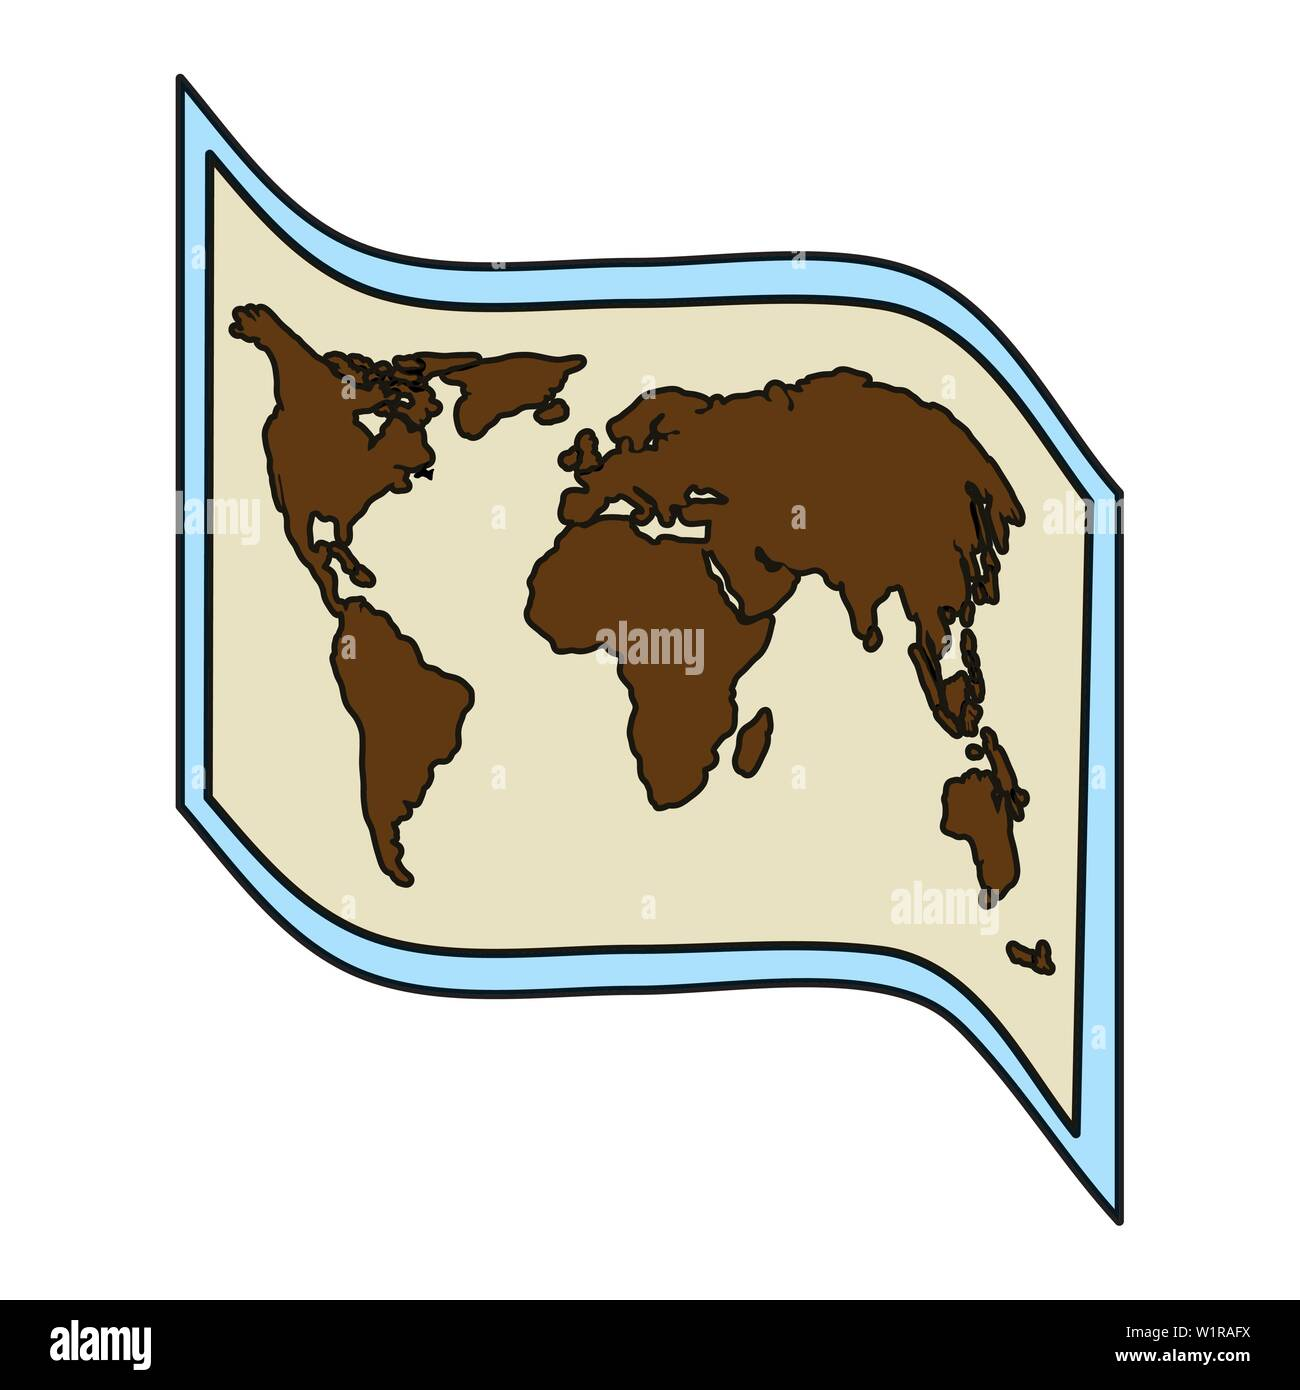 world map paper guide icon - Stock Image